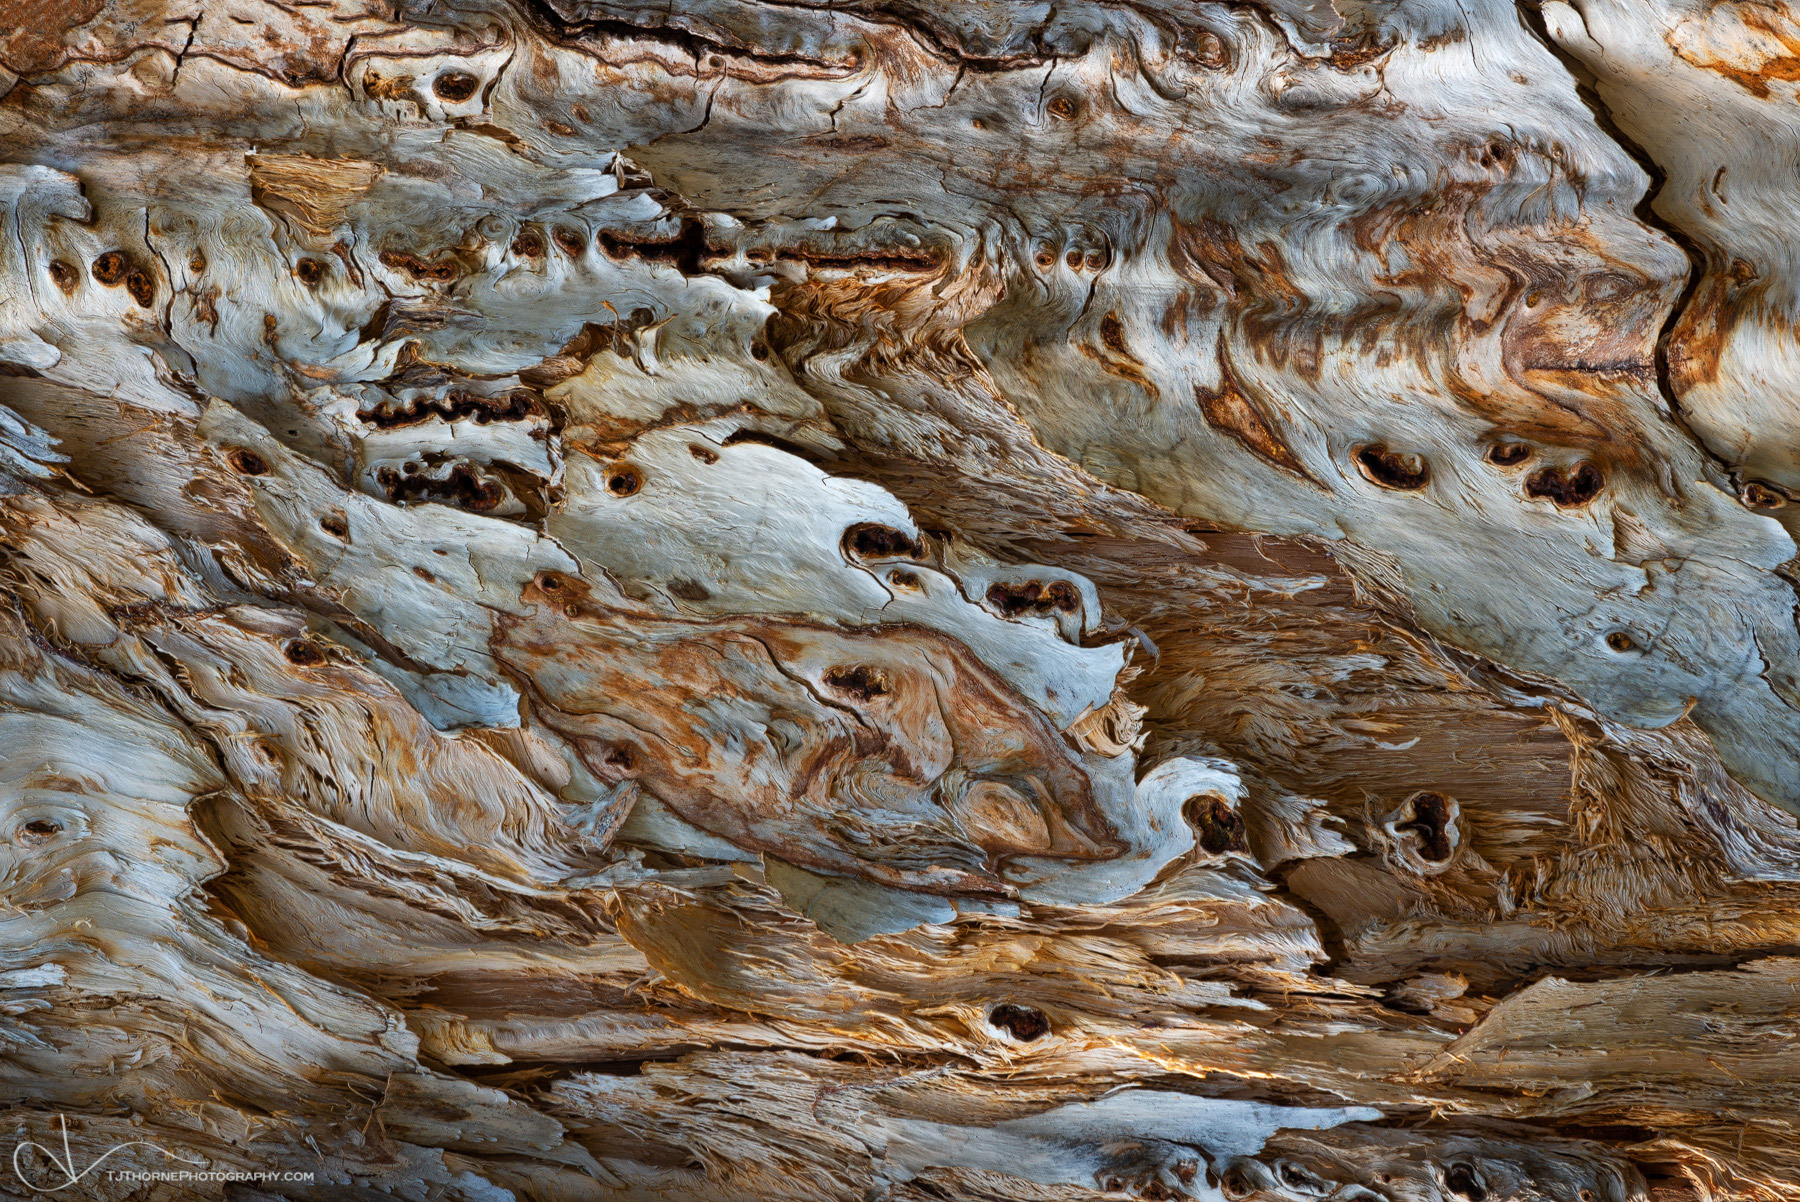 FINE ART LIMITED EDITION OF 100 Soft light illuminates the textures of a white bark pine in Crater Lake National Park, Oregon...